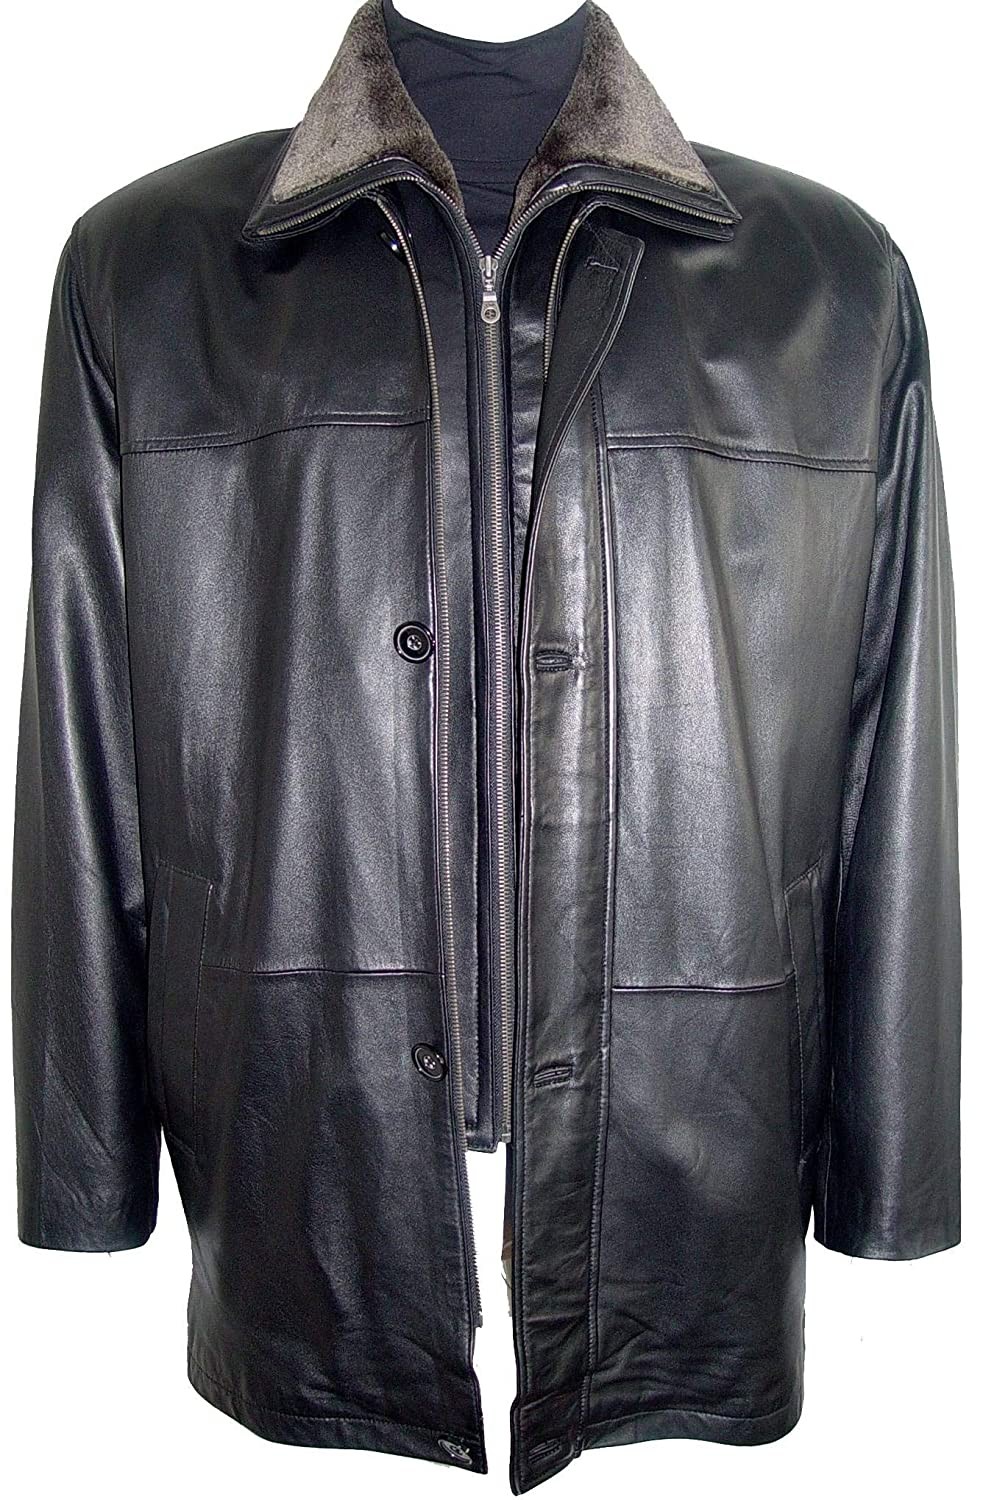 Paccilo 2001 Big Man Leather Jacket Business Clothing Coat Tall 2001prmphrzblz